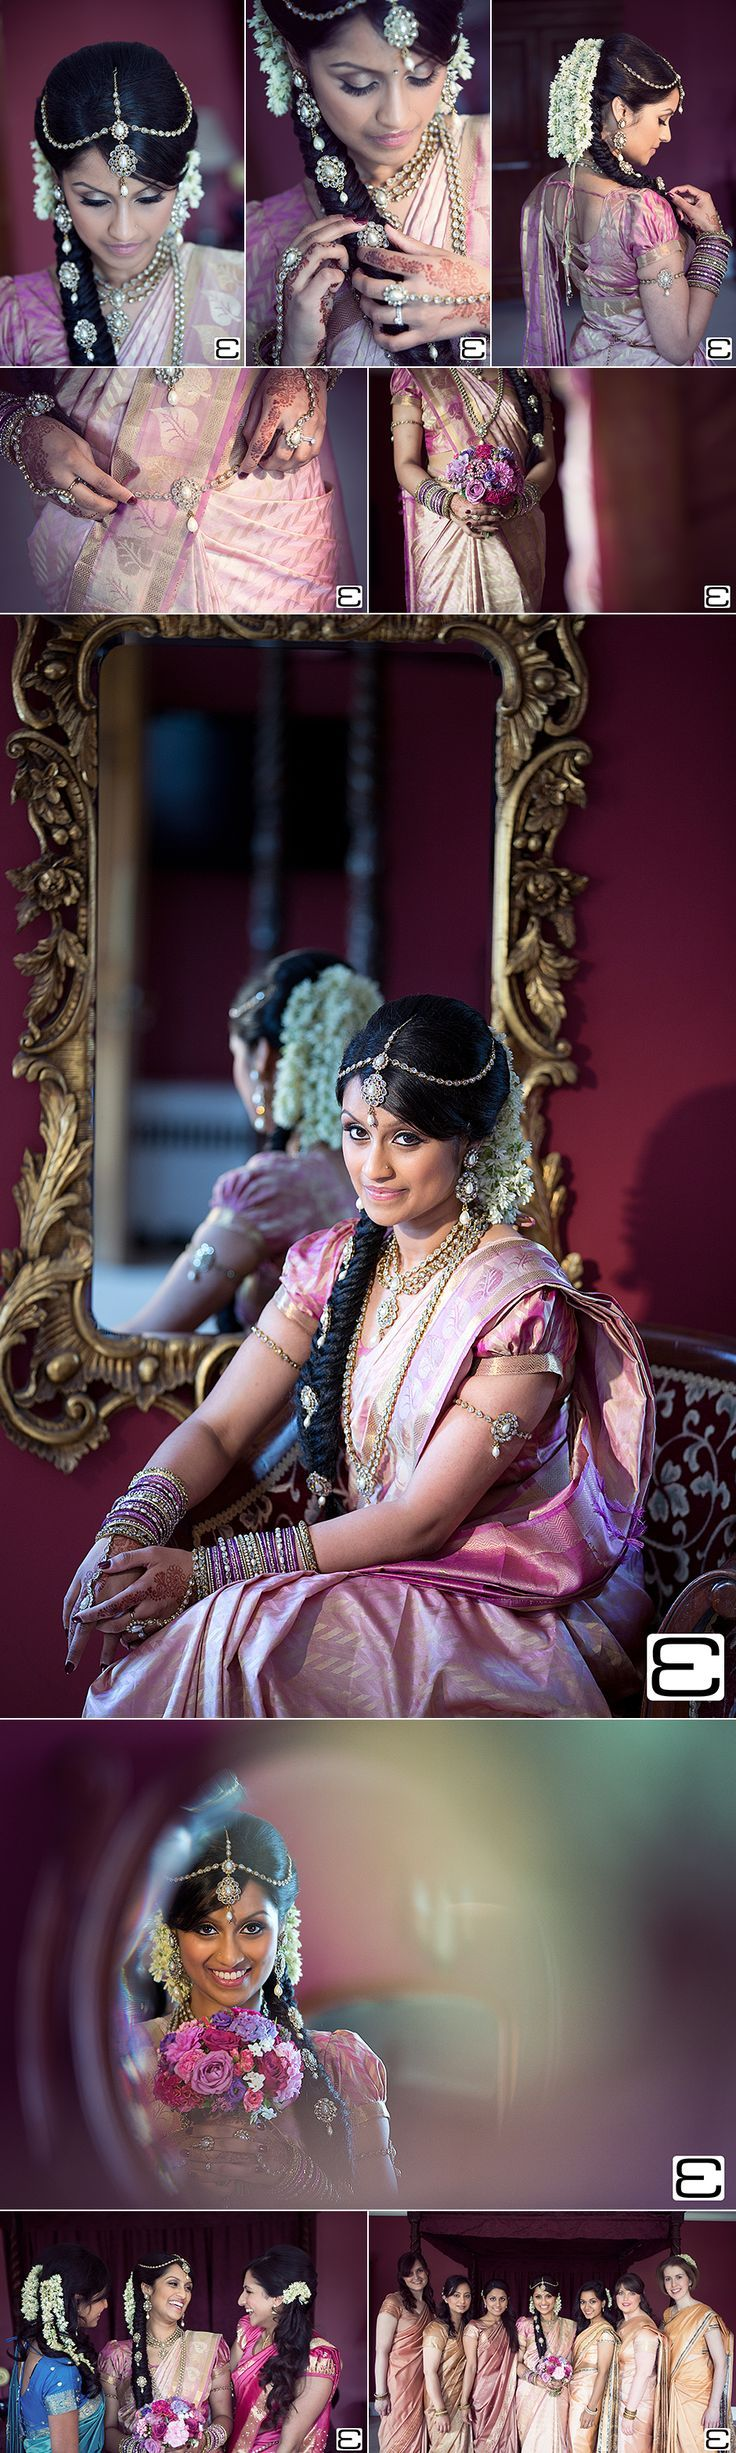 Traditional South Indian bride wearing bridal saree and jewellery. #indianwedding #beautifulbride #feel27